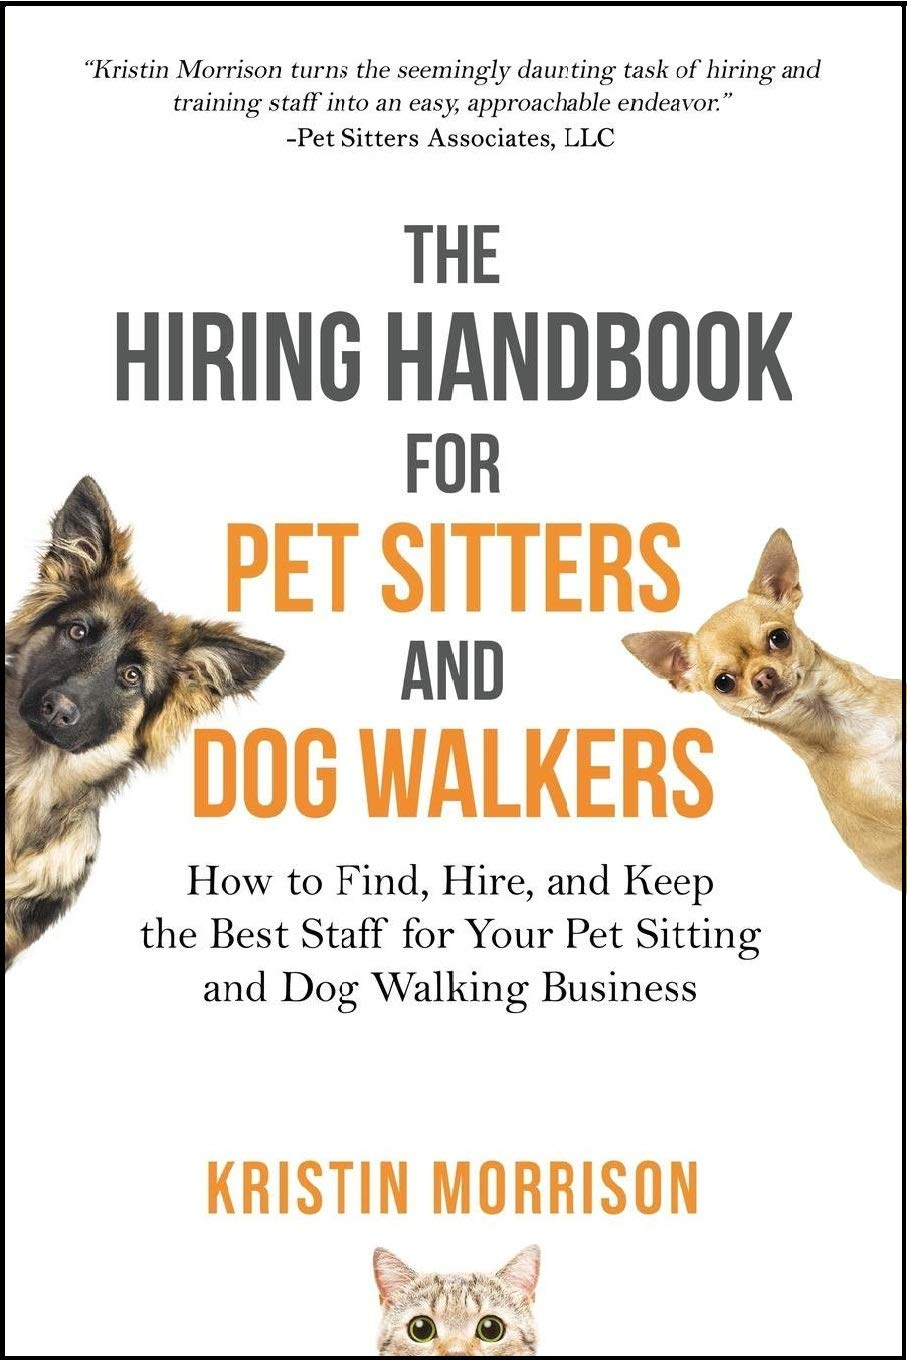 The Hiring Handbook for Pet Sitters and Dog Walkers: How to